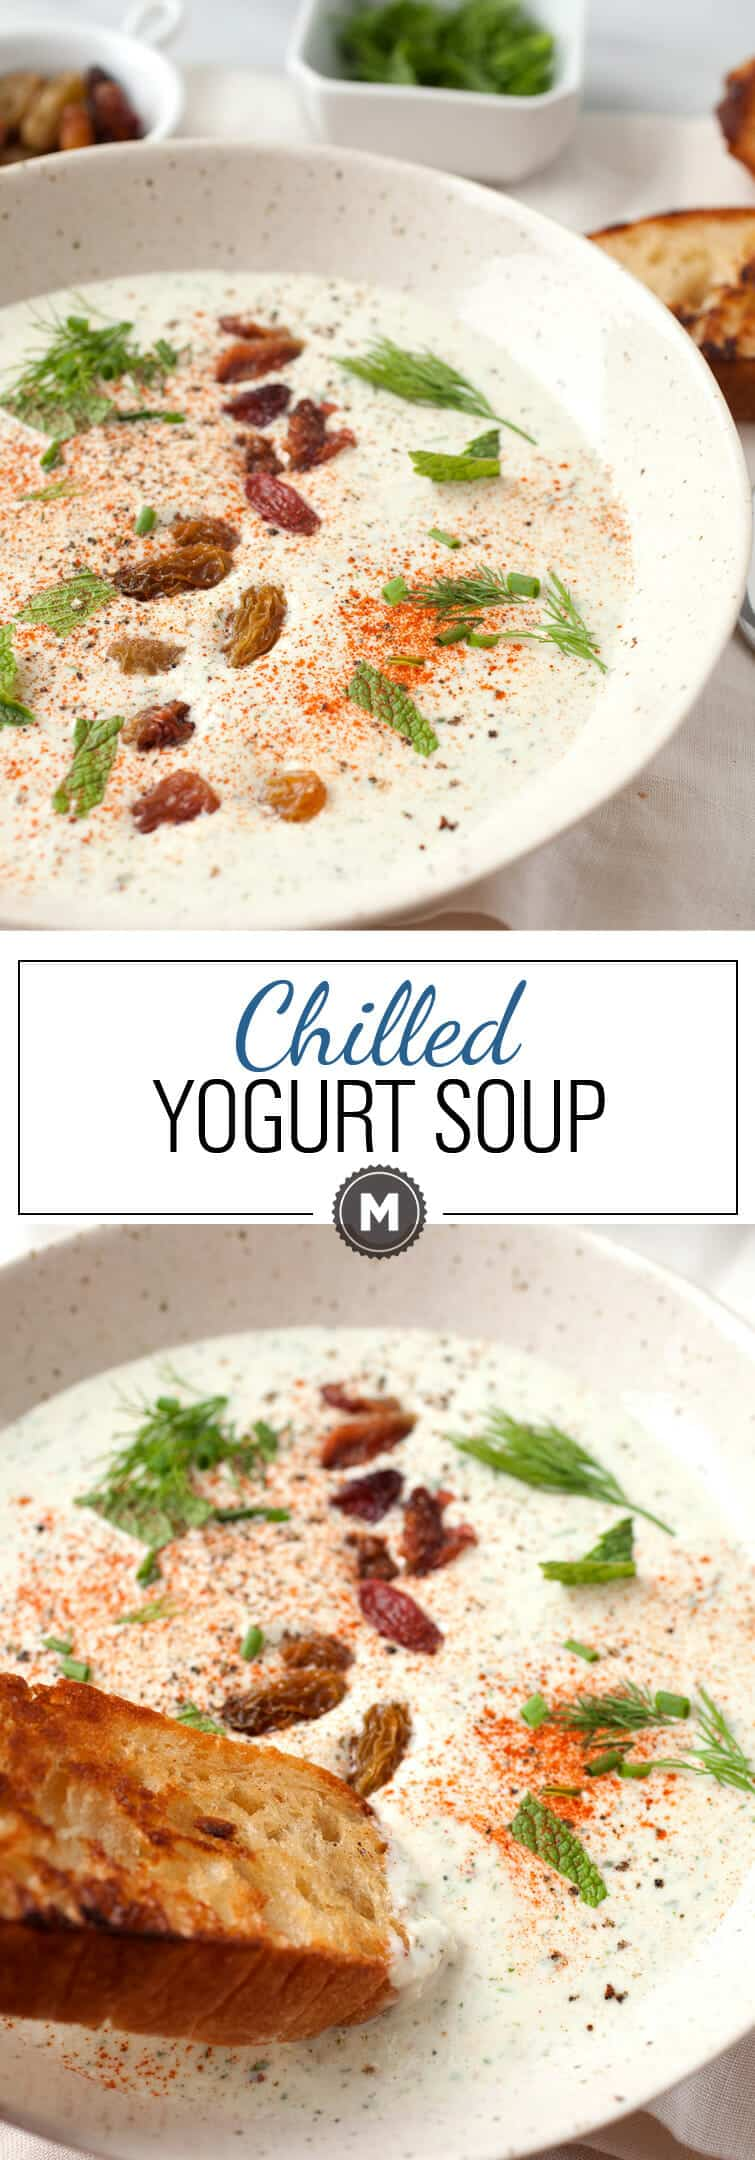 Chilled Yogurt Soup: Take the heat off with this easy to make blender cold yogurt soup! Topped with golden raisins, fresh herbs, and smoked paprika. It's best served with a big hunk of crusty bread! | macheesmo.com